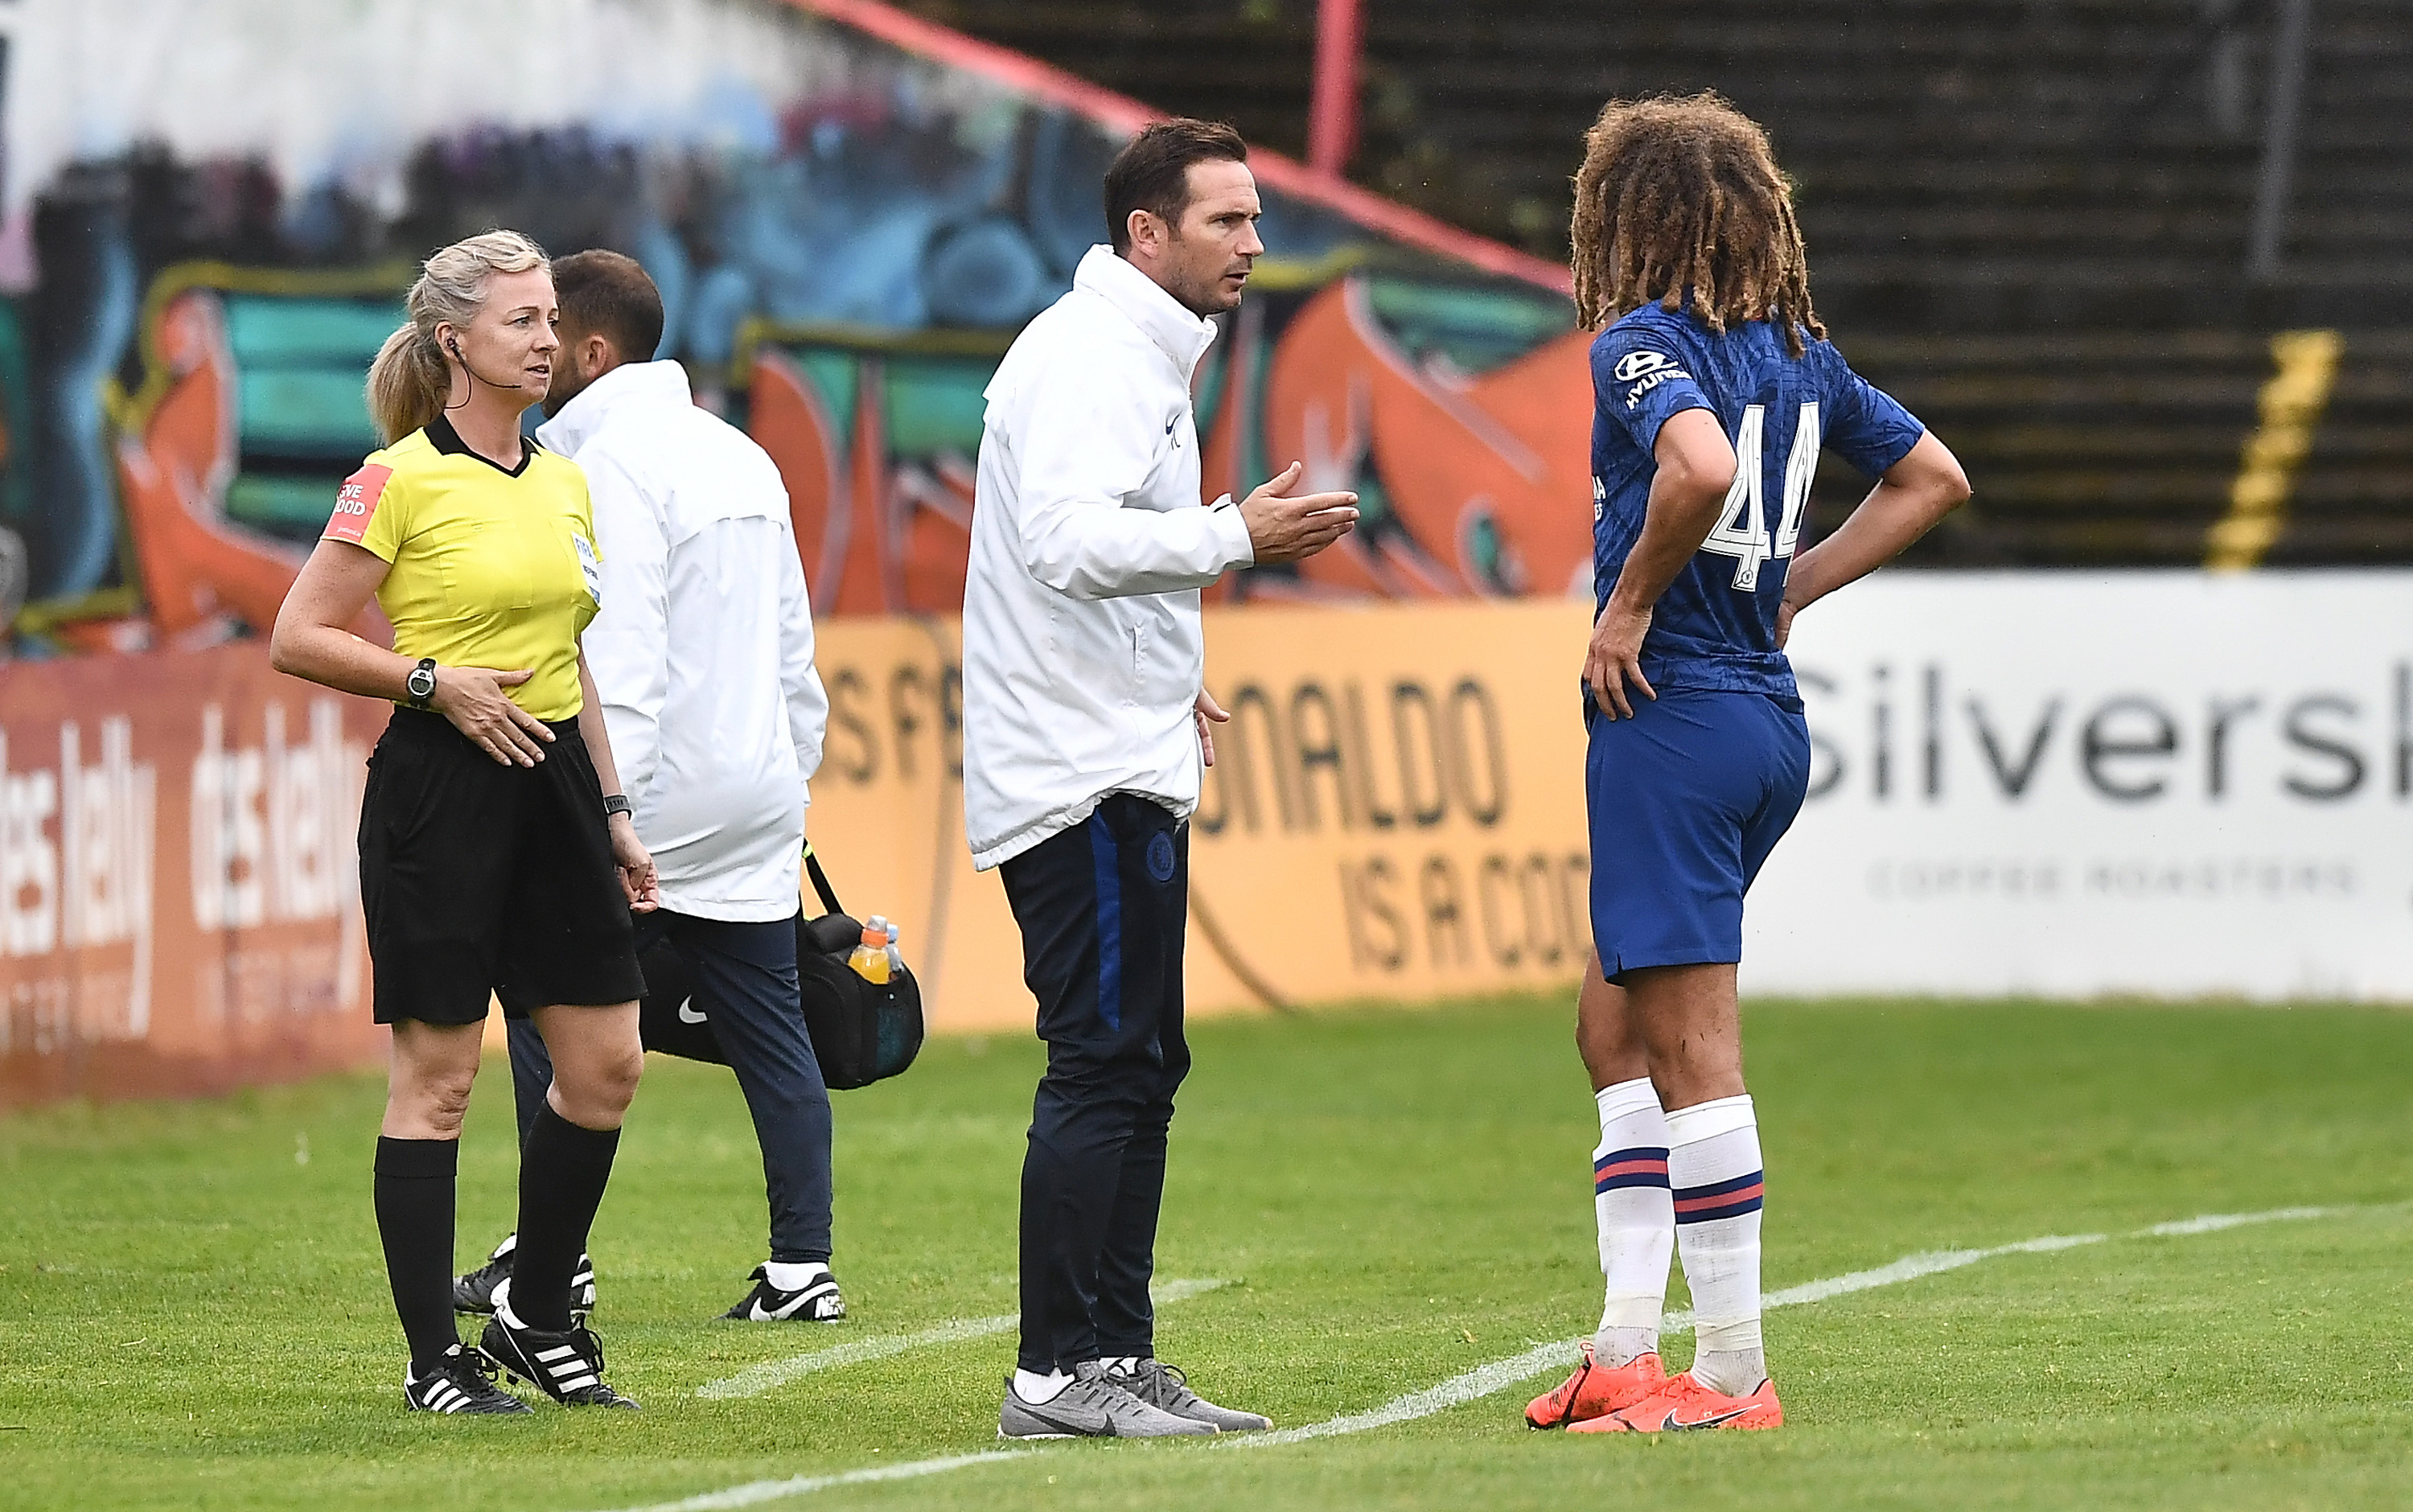 Lampard wants Ampadu to go on loan and play 'a lot of games'